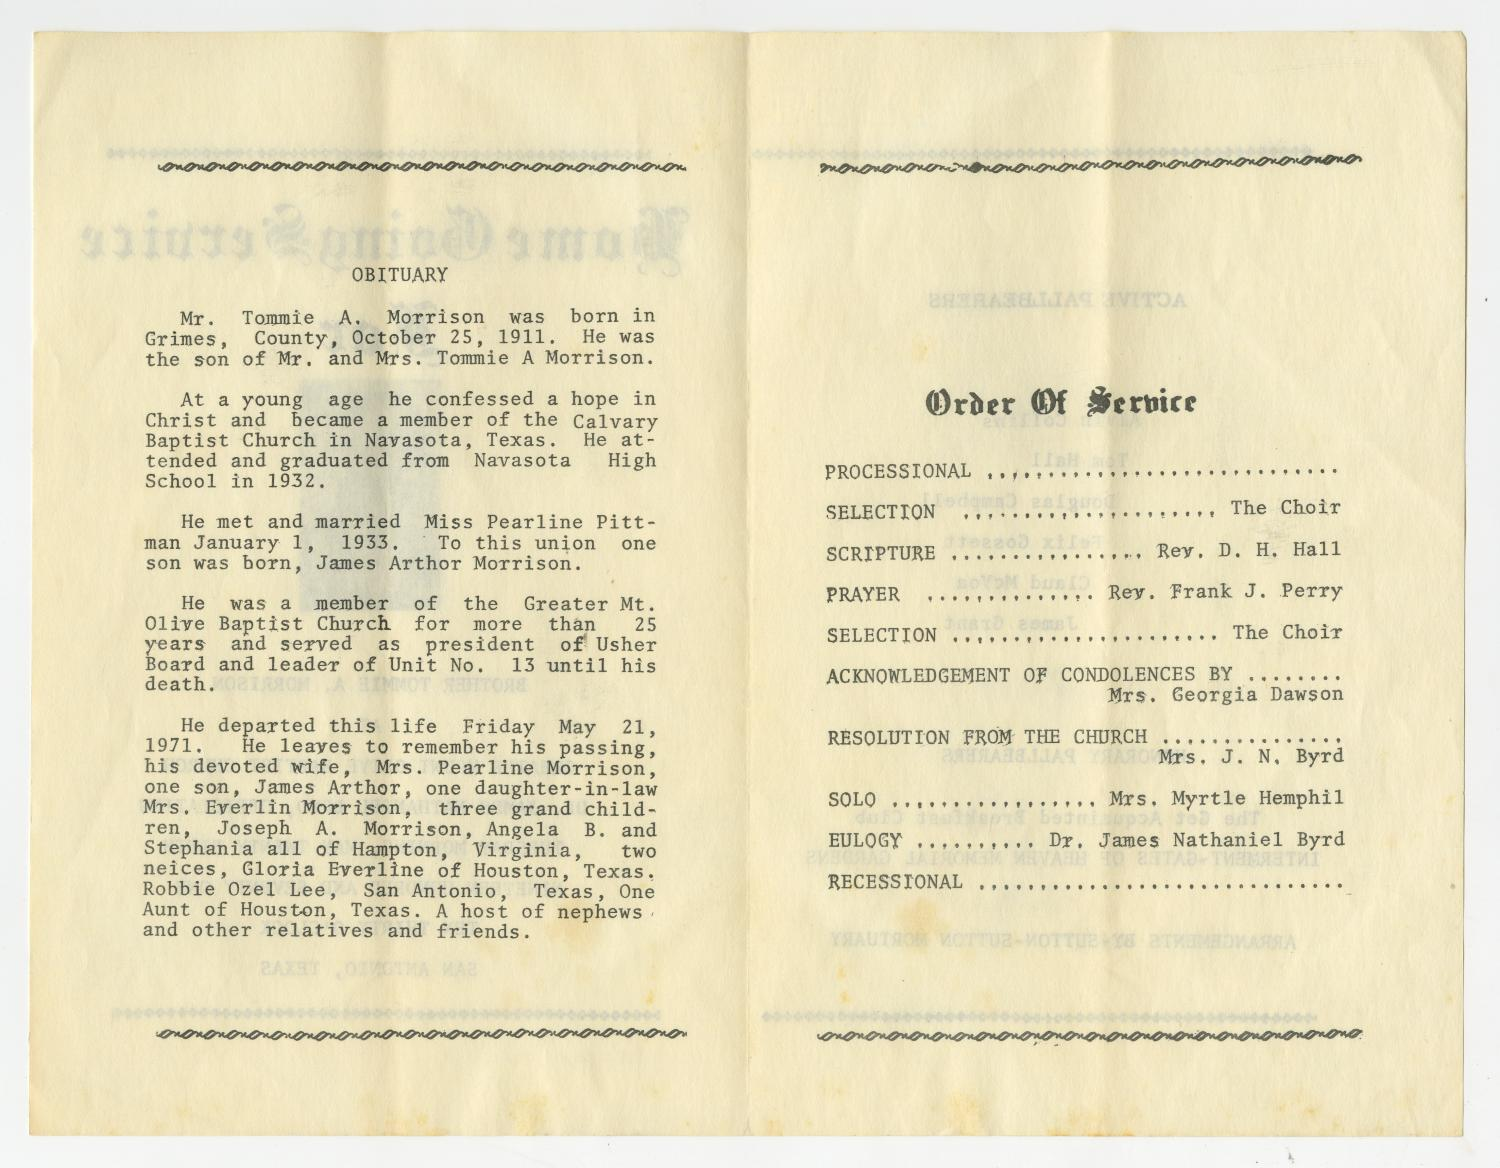 Funeral Program for Tommie A  Morrison, May 25, 1971] - Page